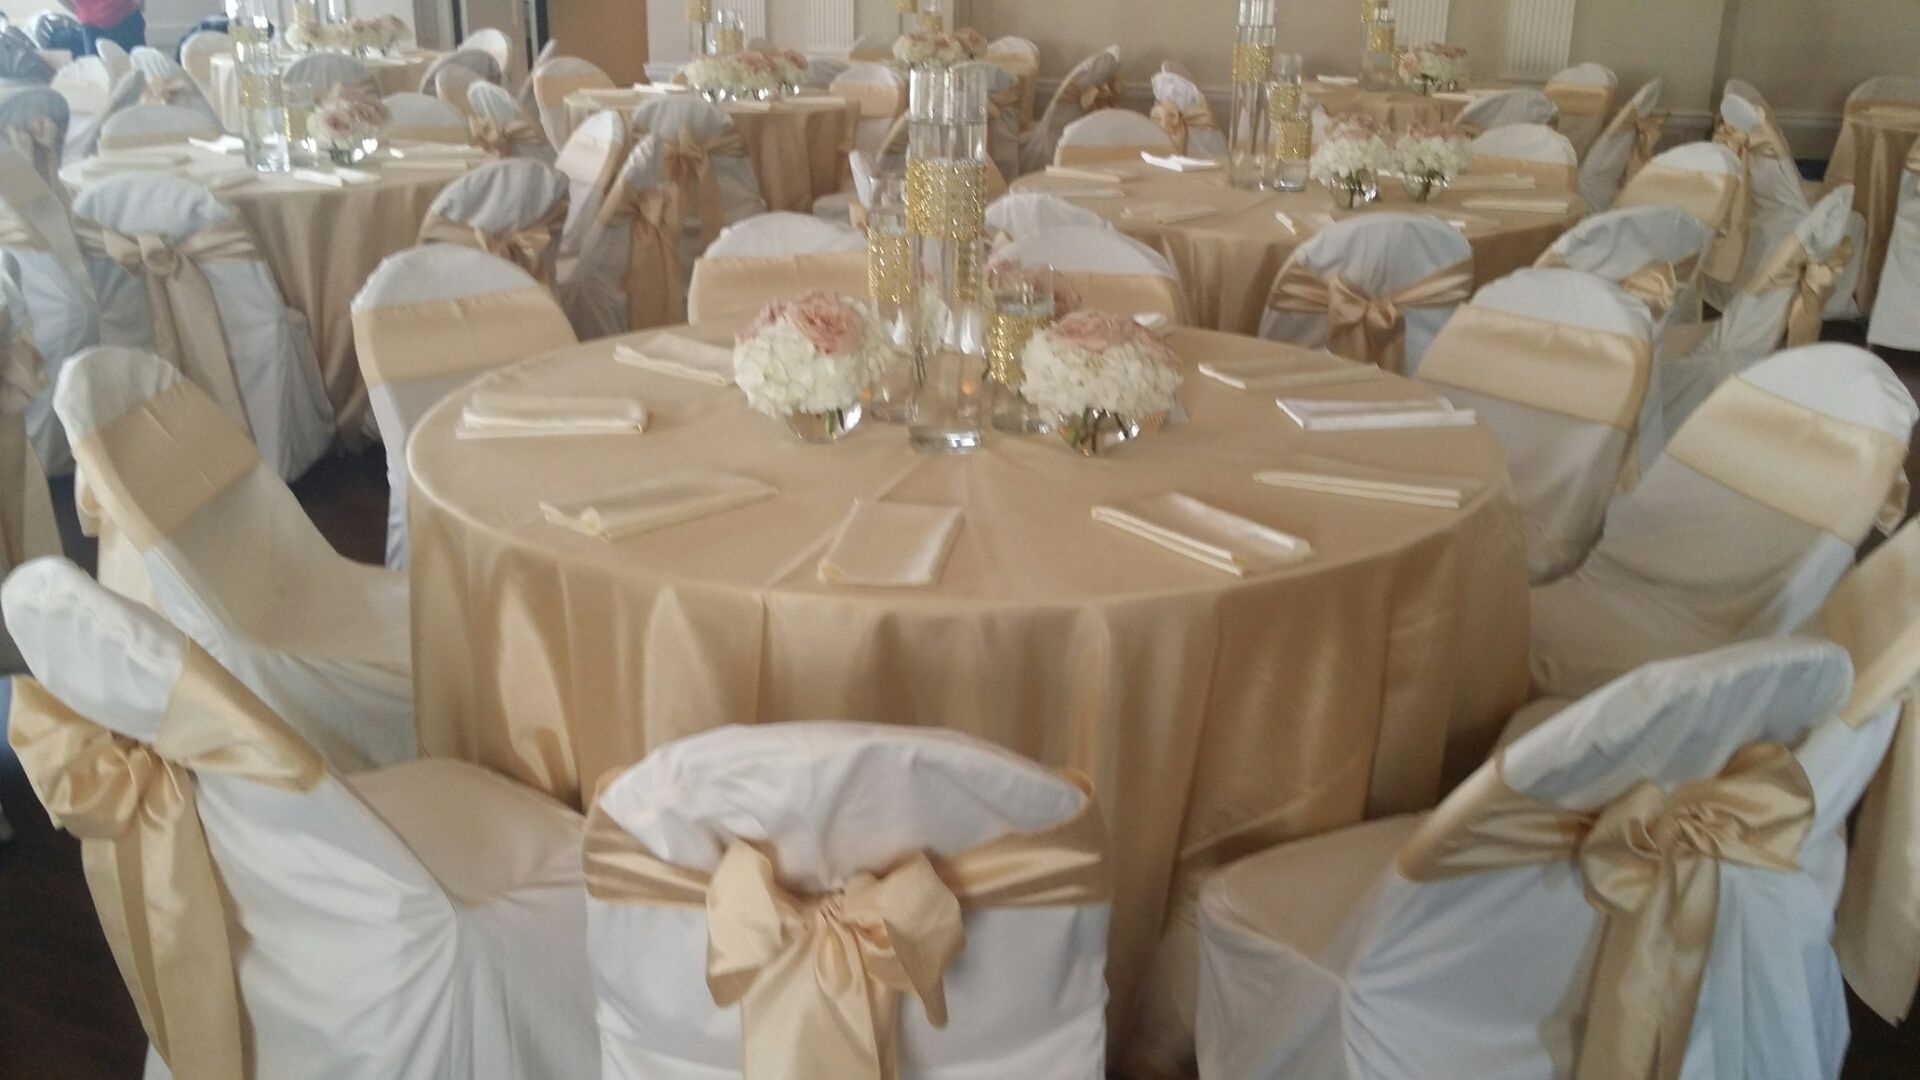 ivory wedding chair covers hire best potty chairs for toddlers soft gold shantung tablecloths and sashes